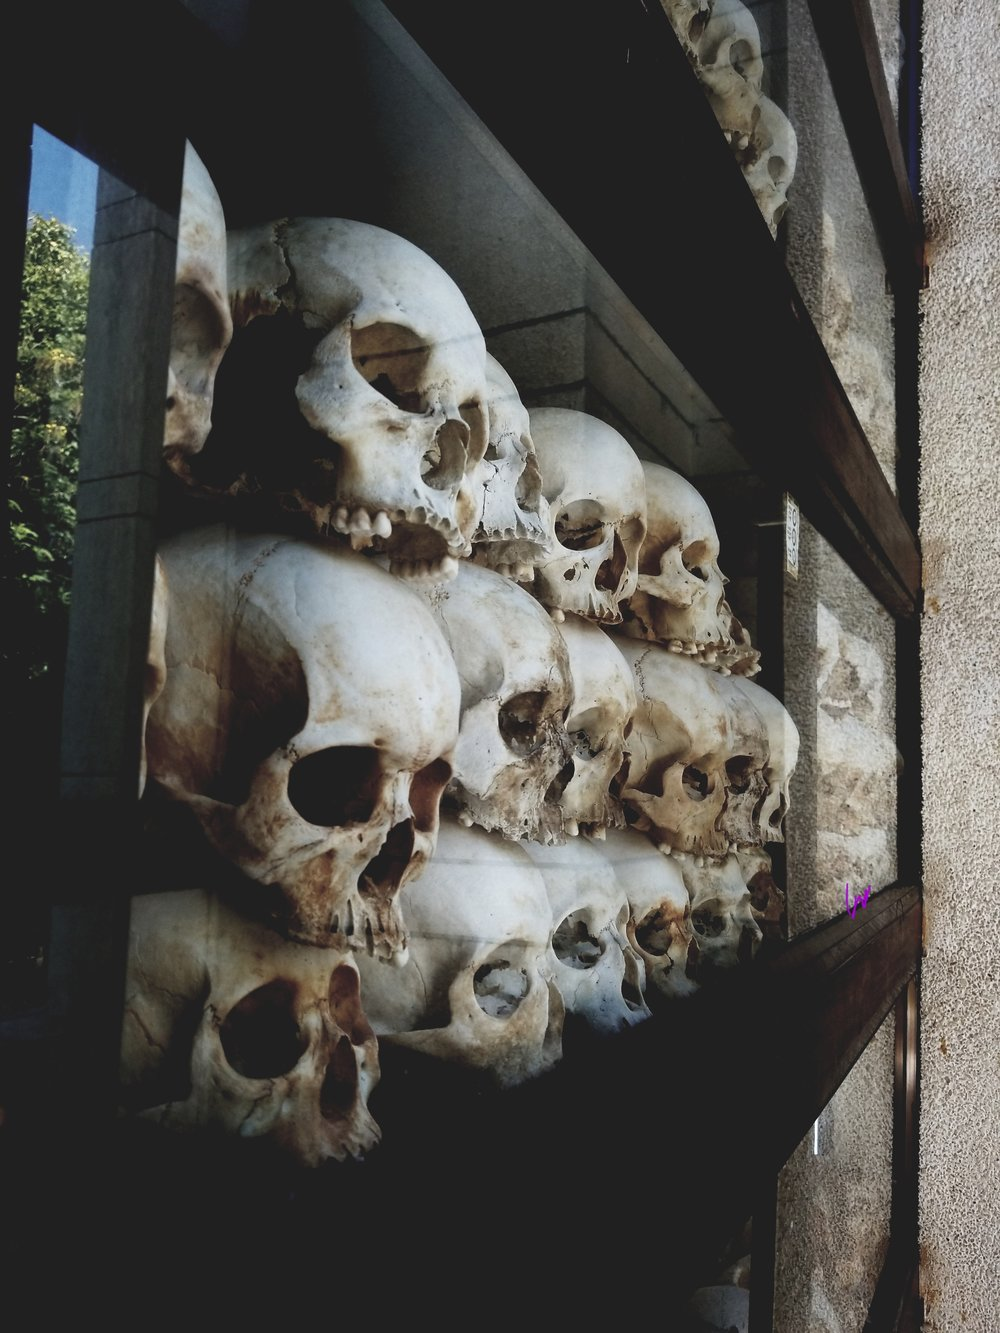 Hundreds of skulls that are cared for and on respectful display at The Killing Fields